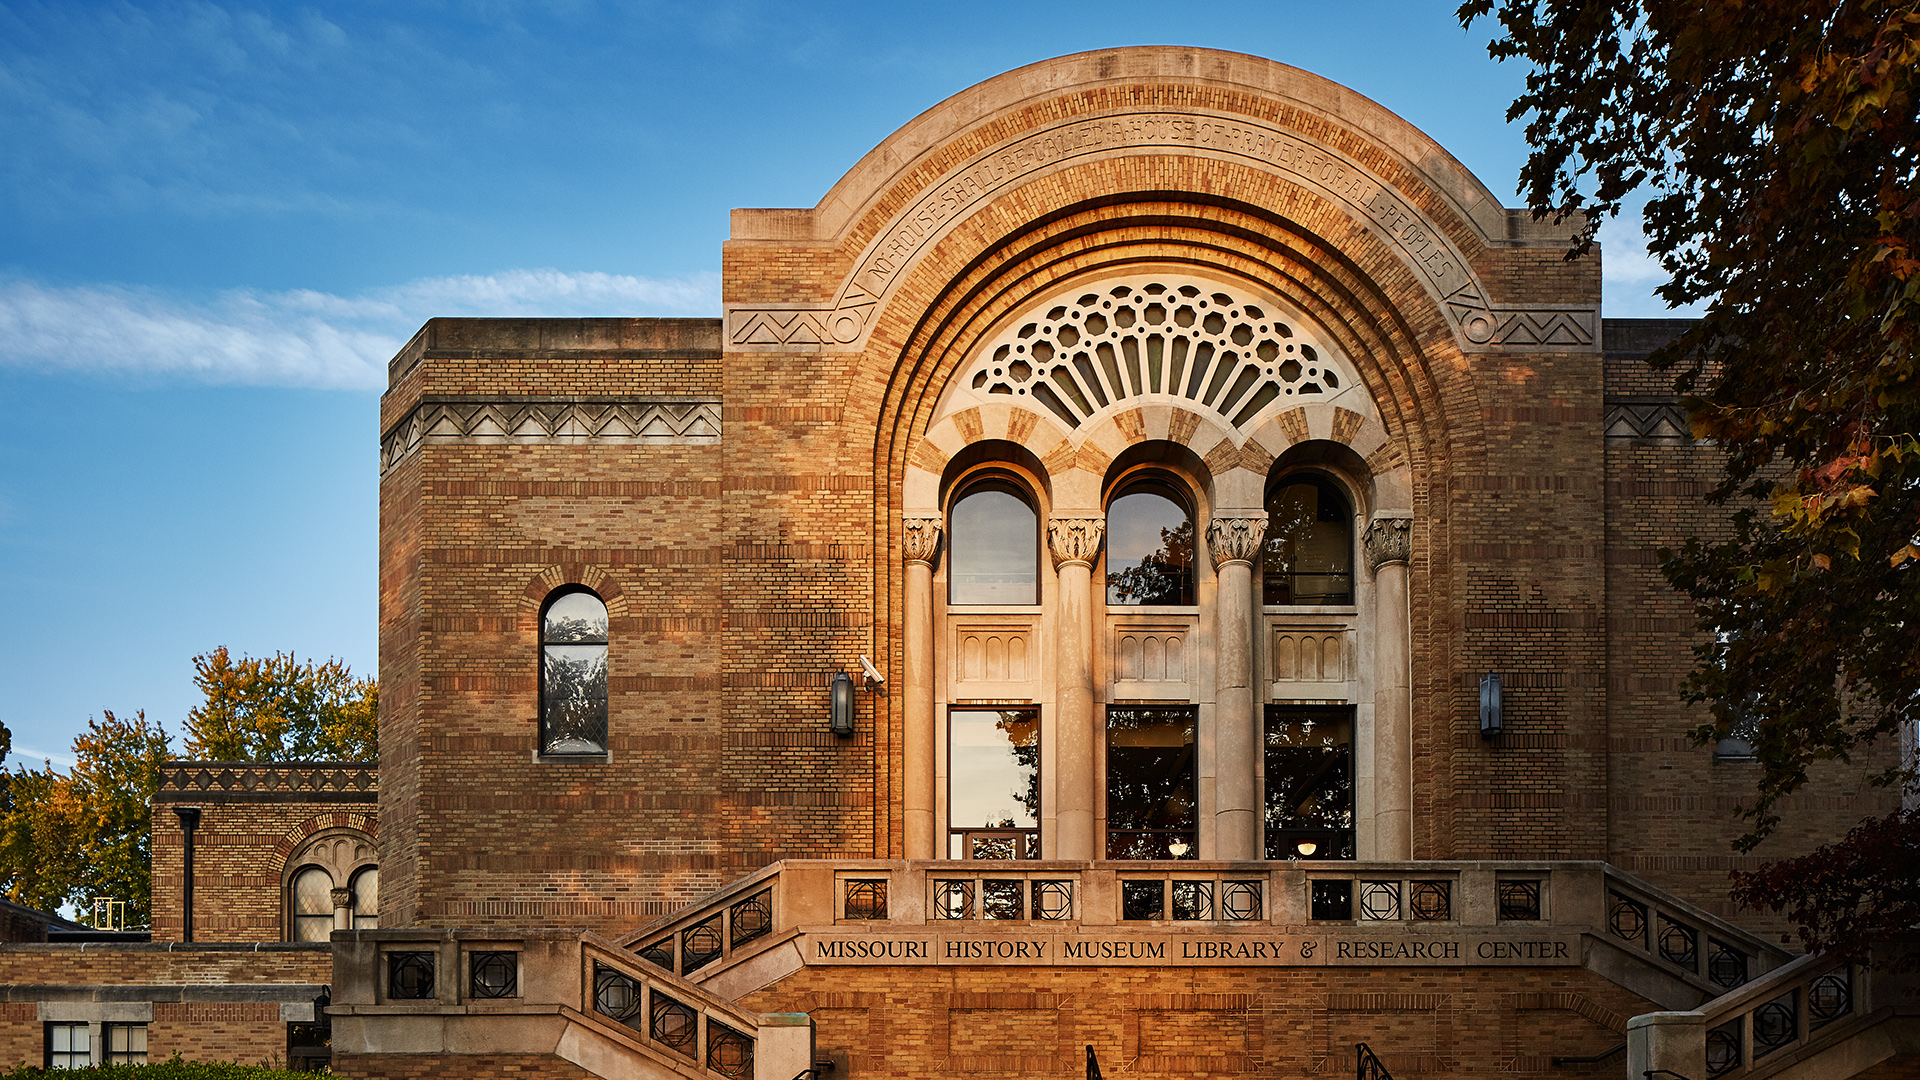 Tour of the Missouri Historical Society Library & Research Center